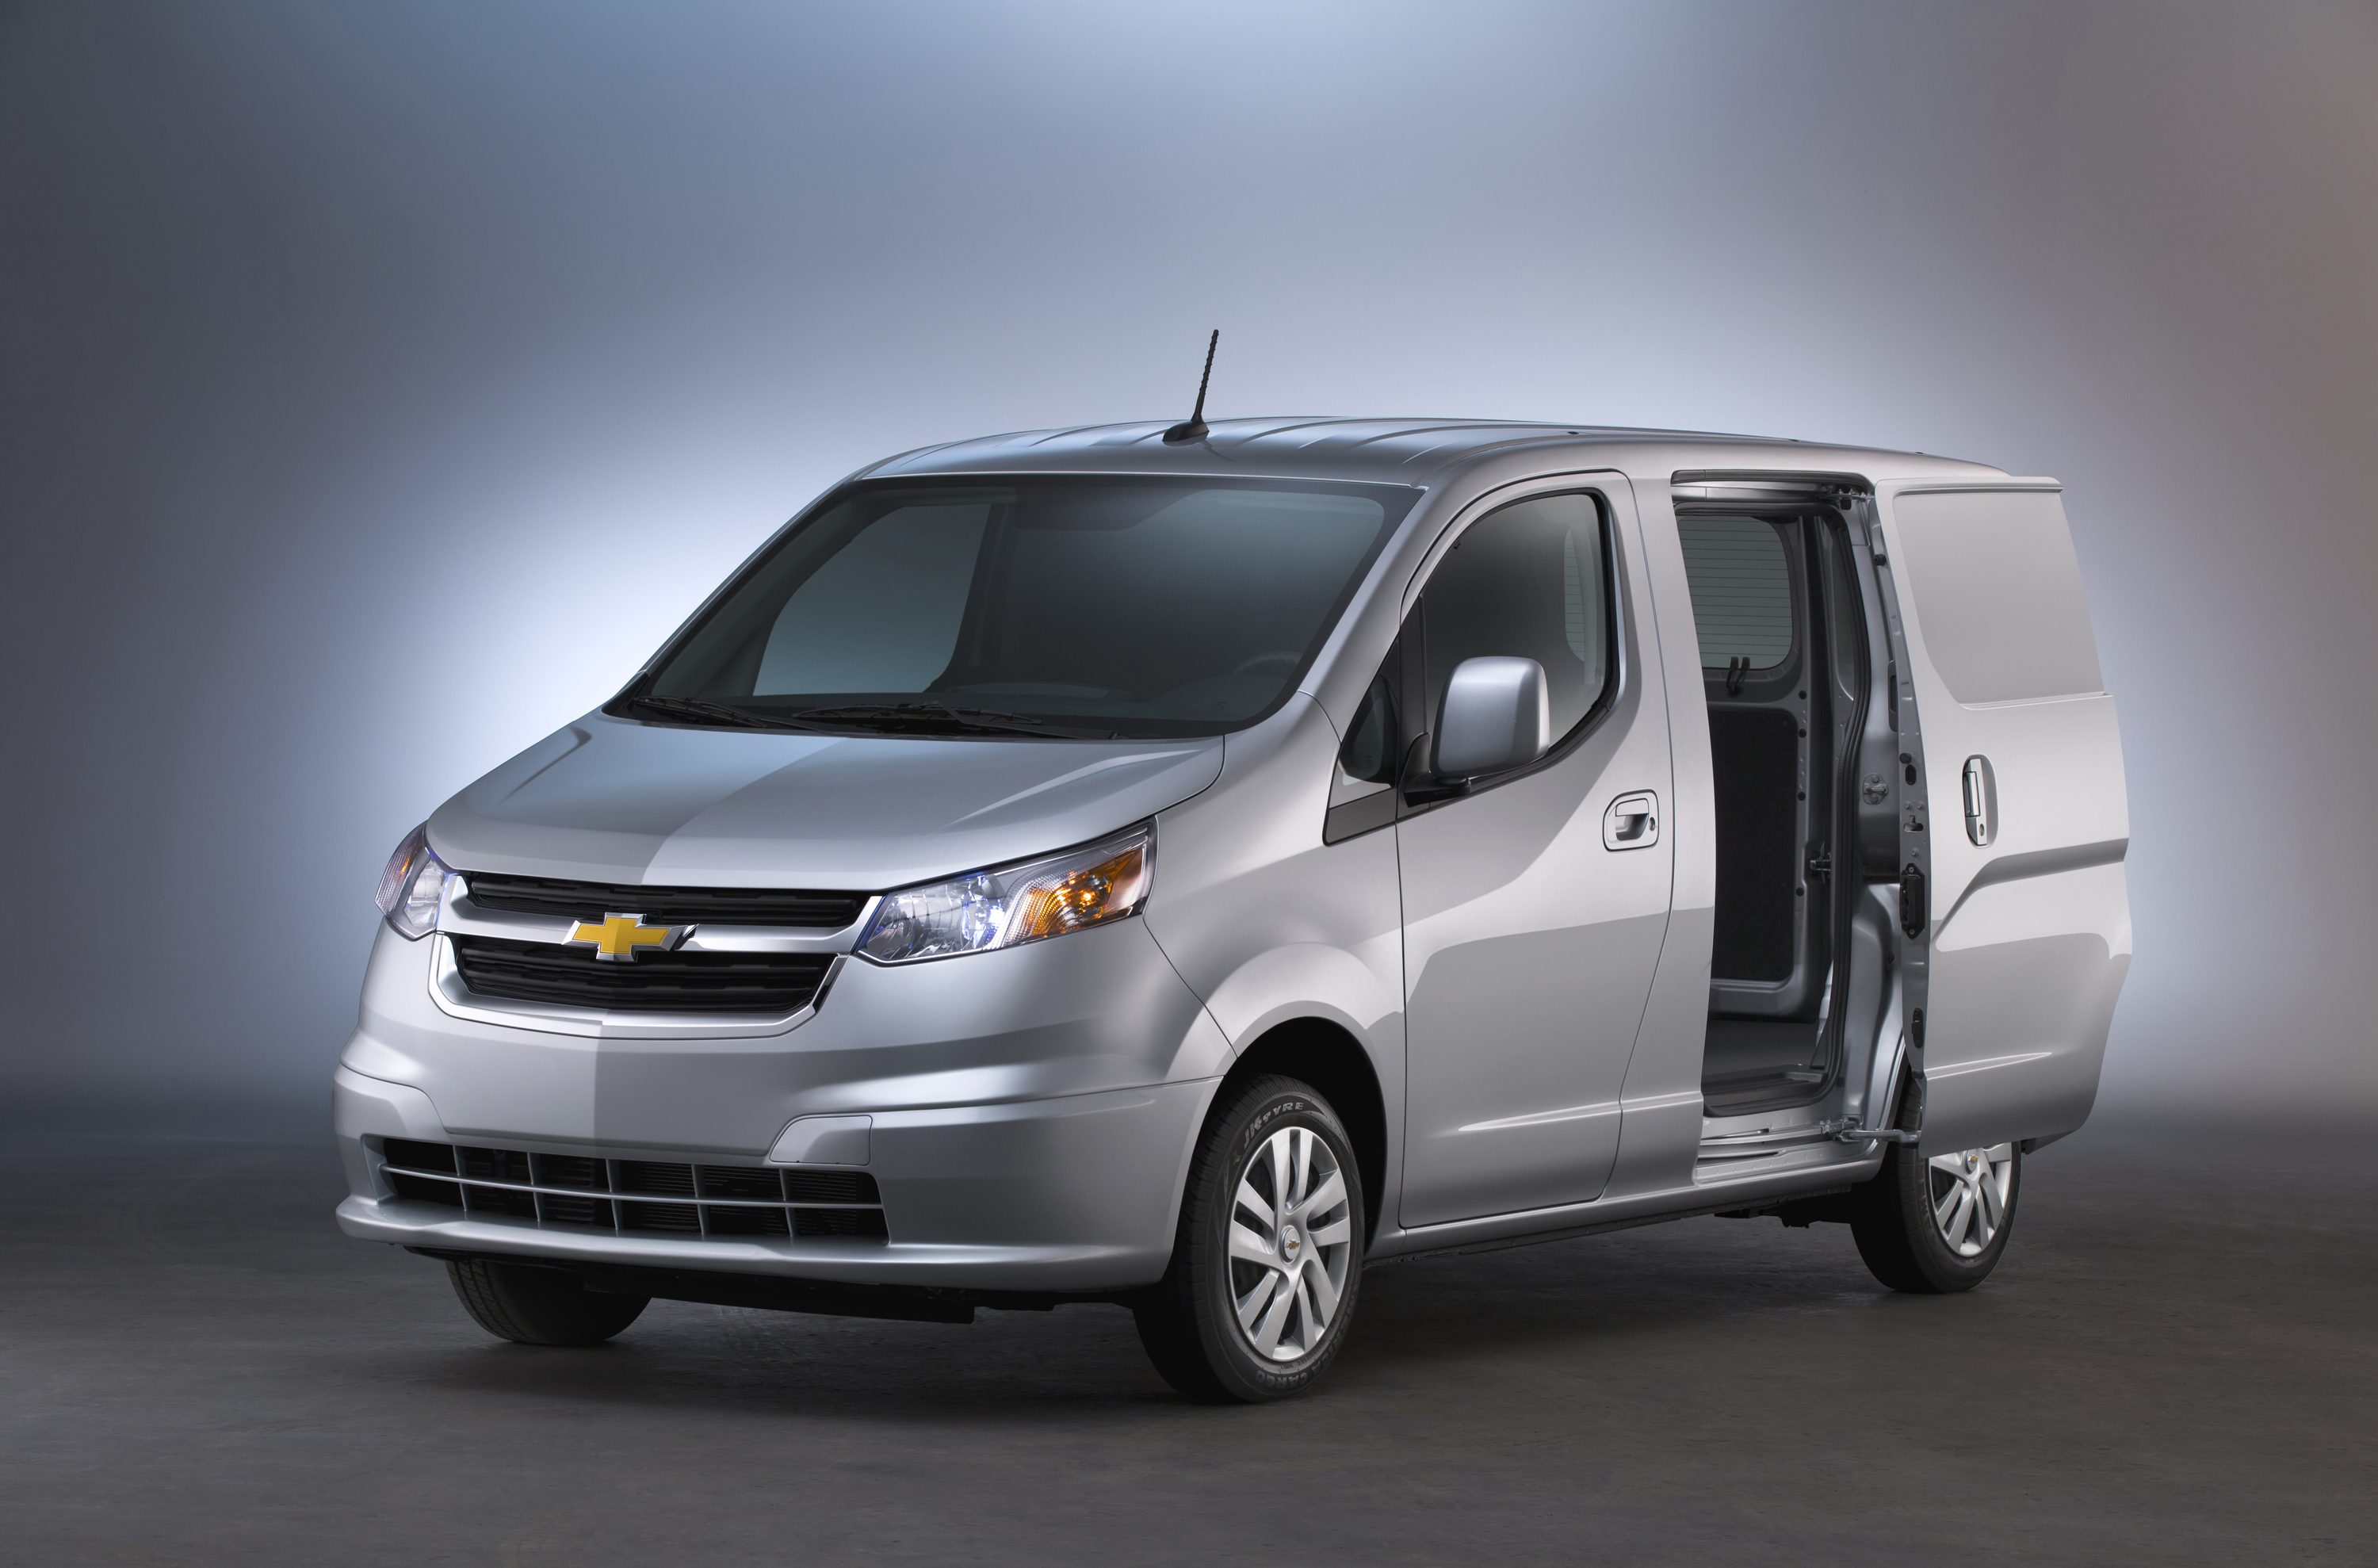 e2284339be32 2015 Chevrolet City Express Delivers the Goods